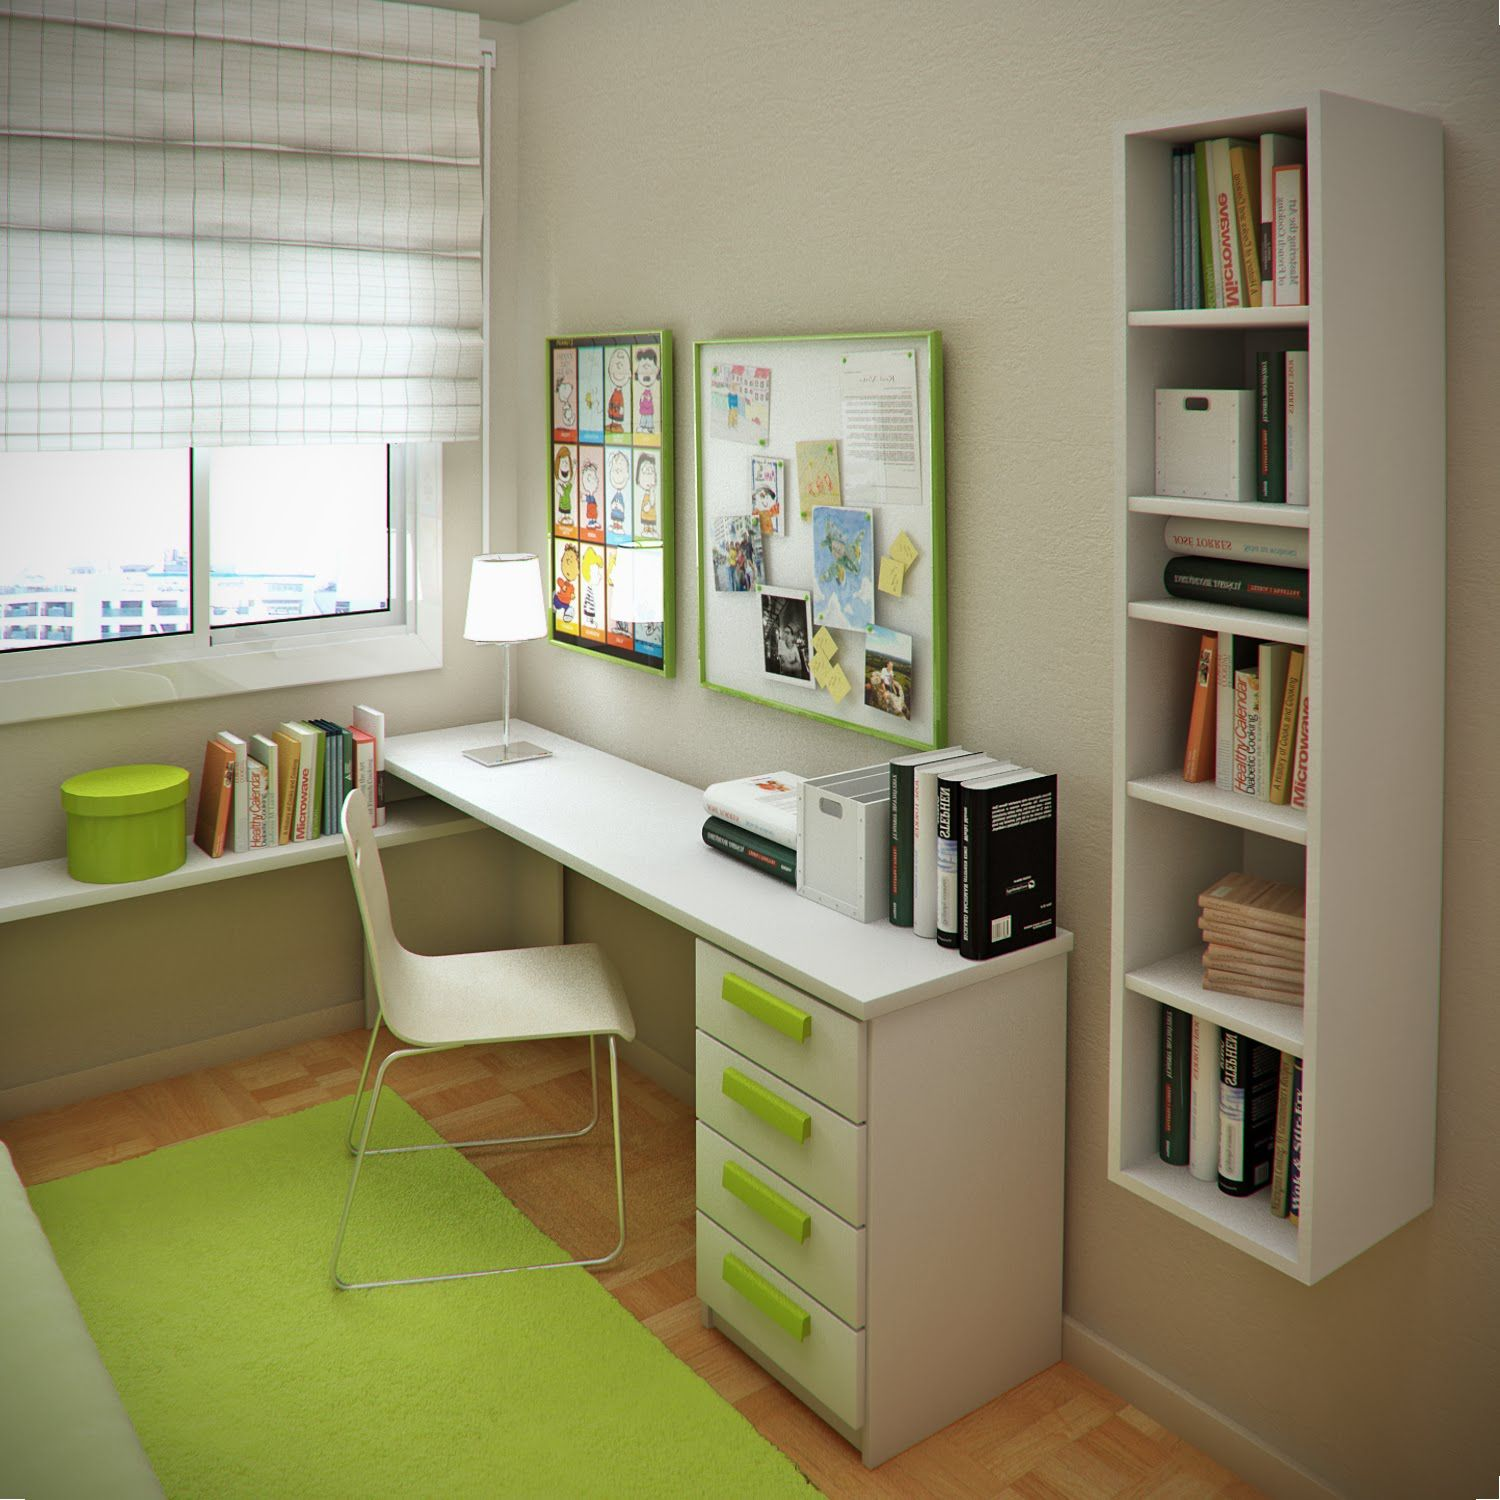 Superior Small Study Room Design Ideas Part - 8: Space Saving For Kids Small Bedroom Design Ideas By Sergi Mengot Book  Shelves And Workspace In Small Teen Bedroom Design Ideas By Sergi Mengot U2013  Home ...